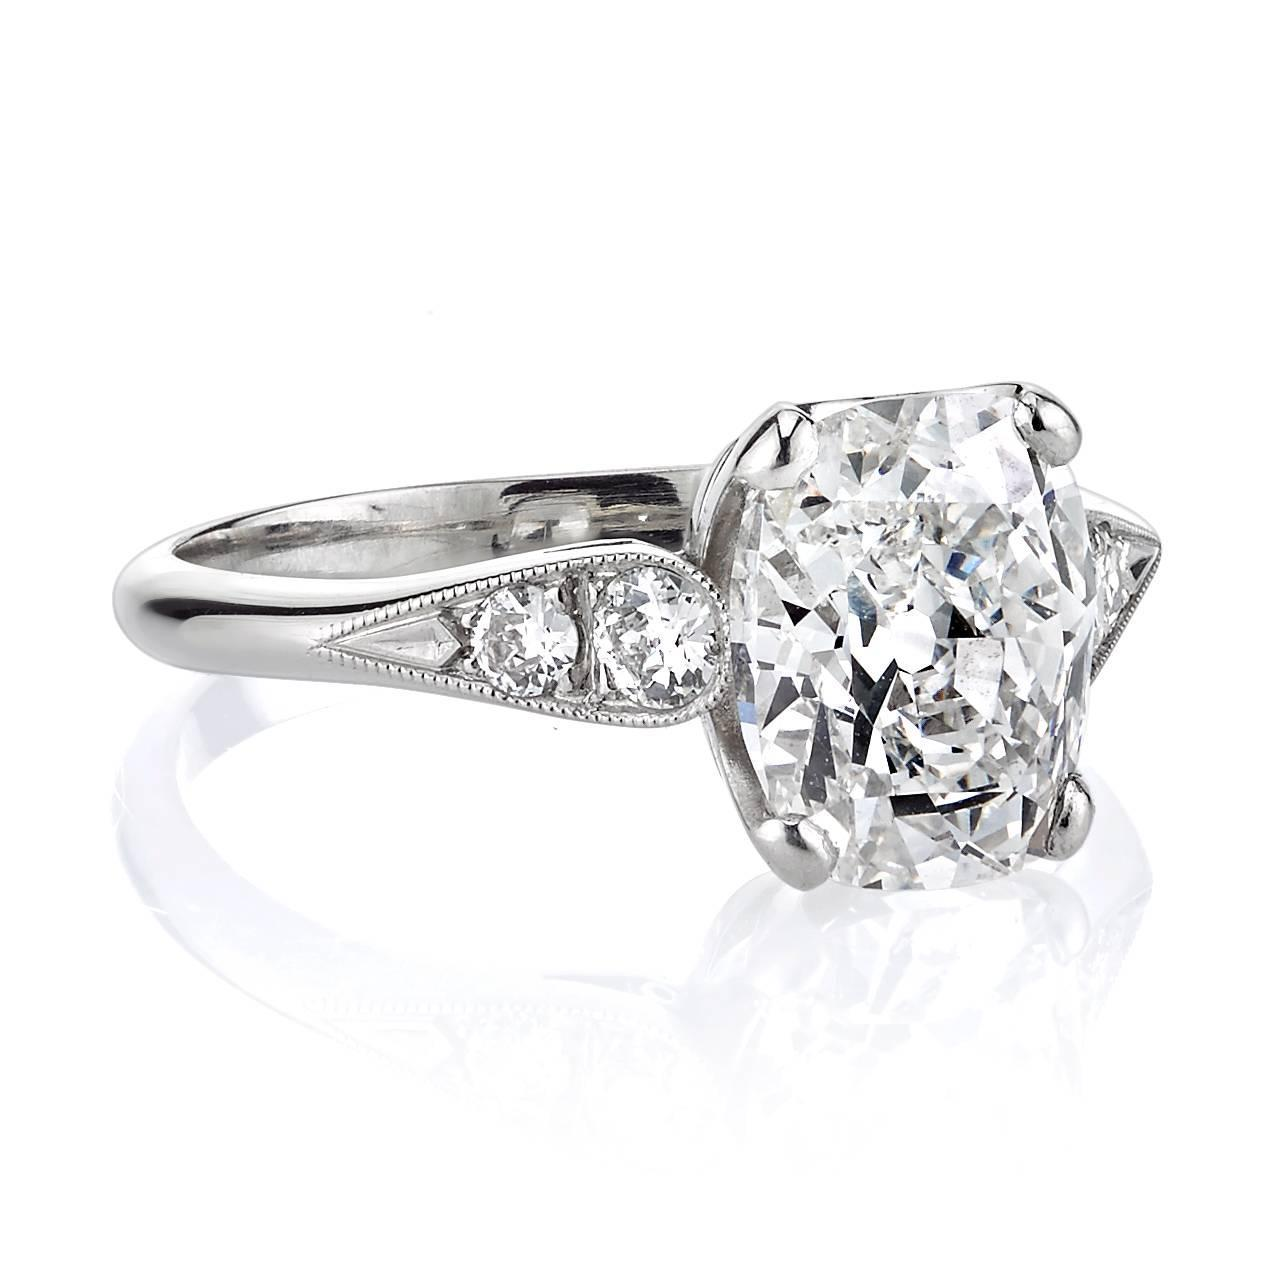 2 33 Carat Cushion Cut Diamond platinum Engagement Ring For Sale at 1stdibs